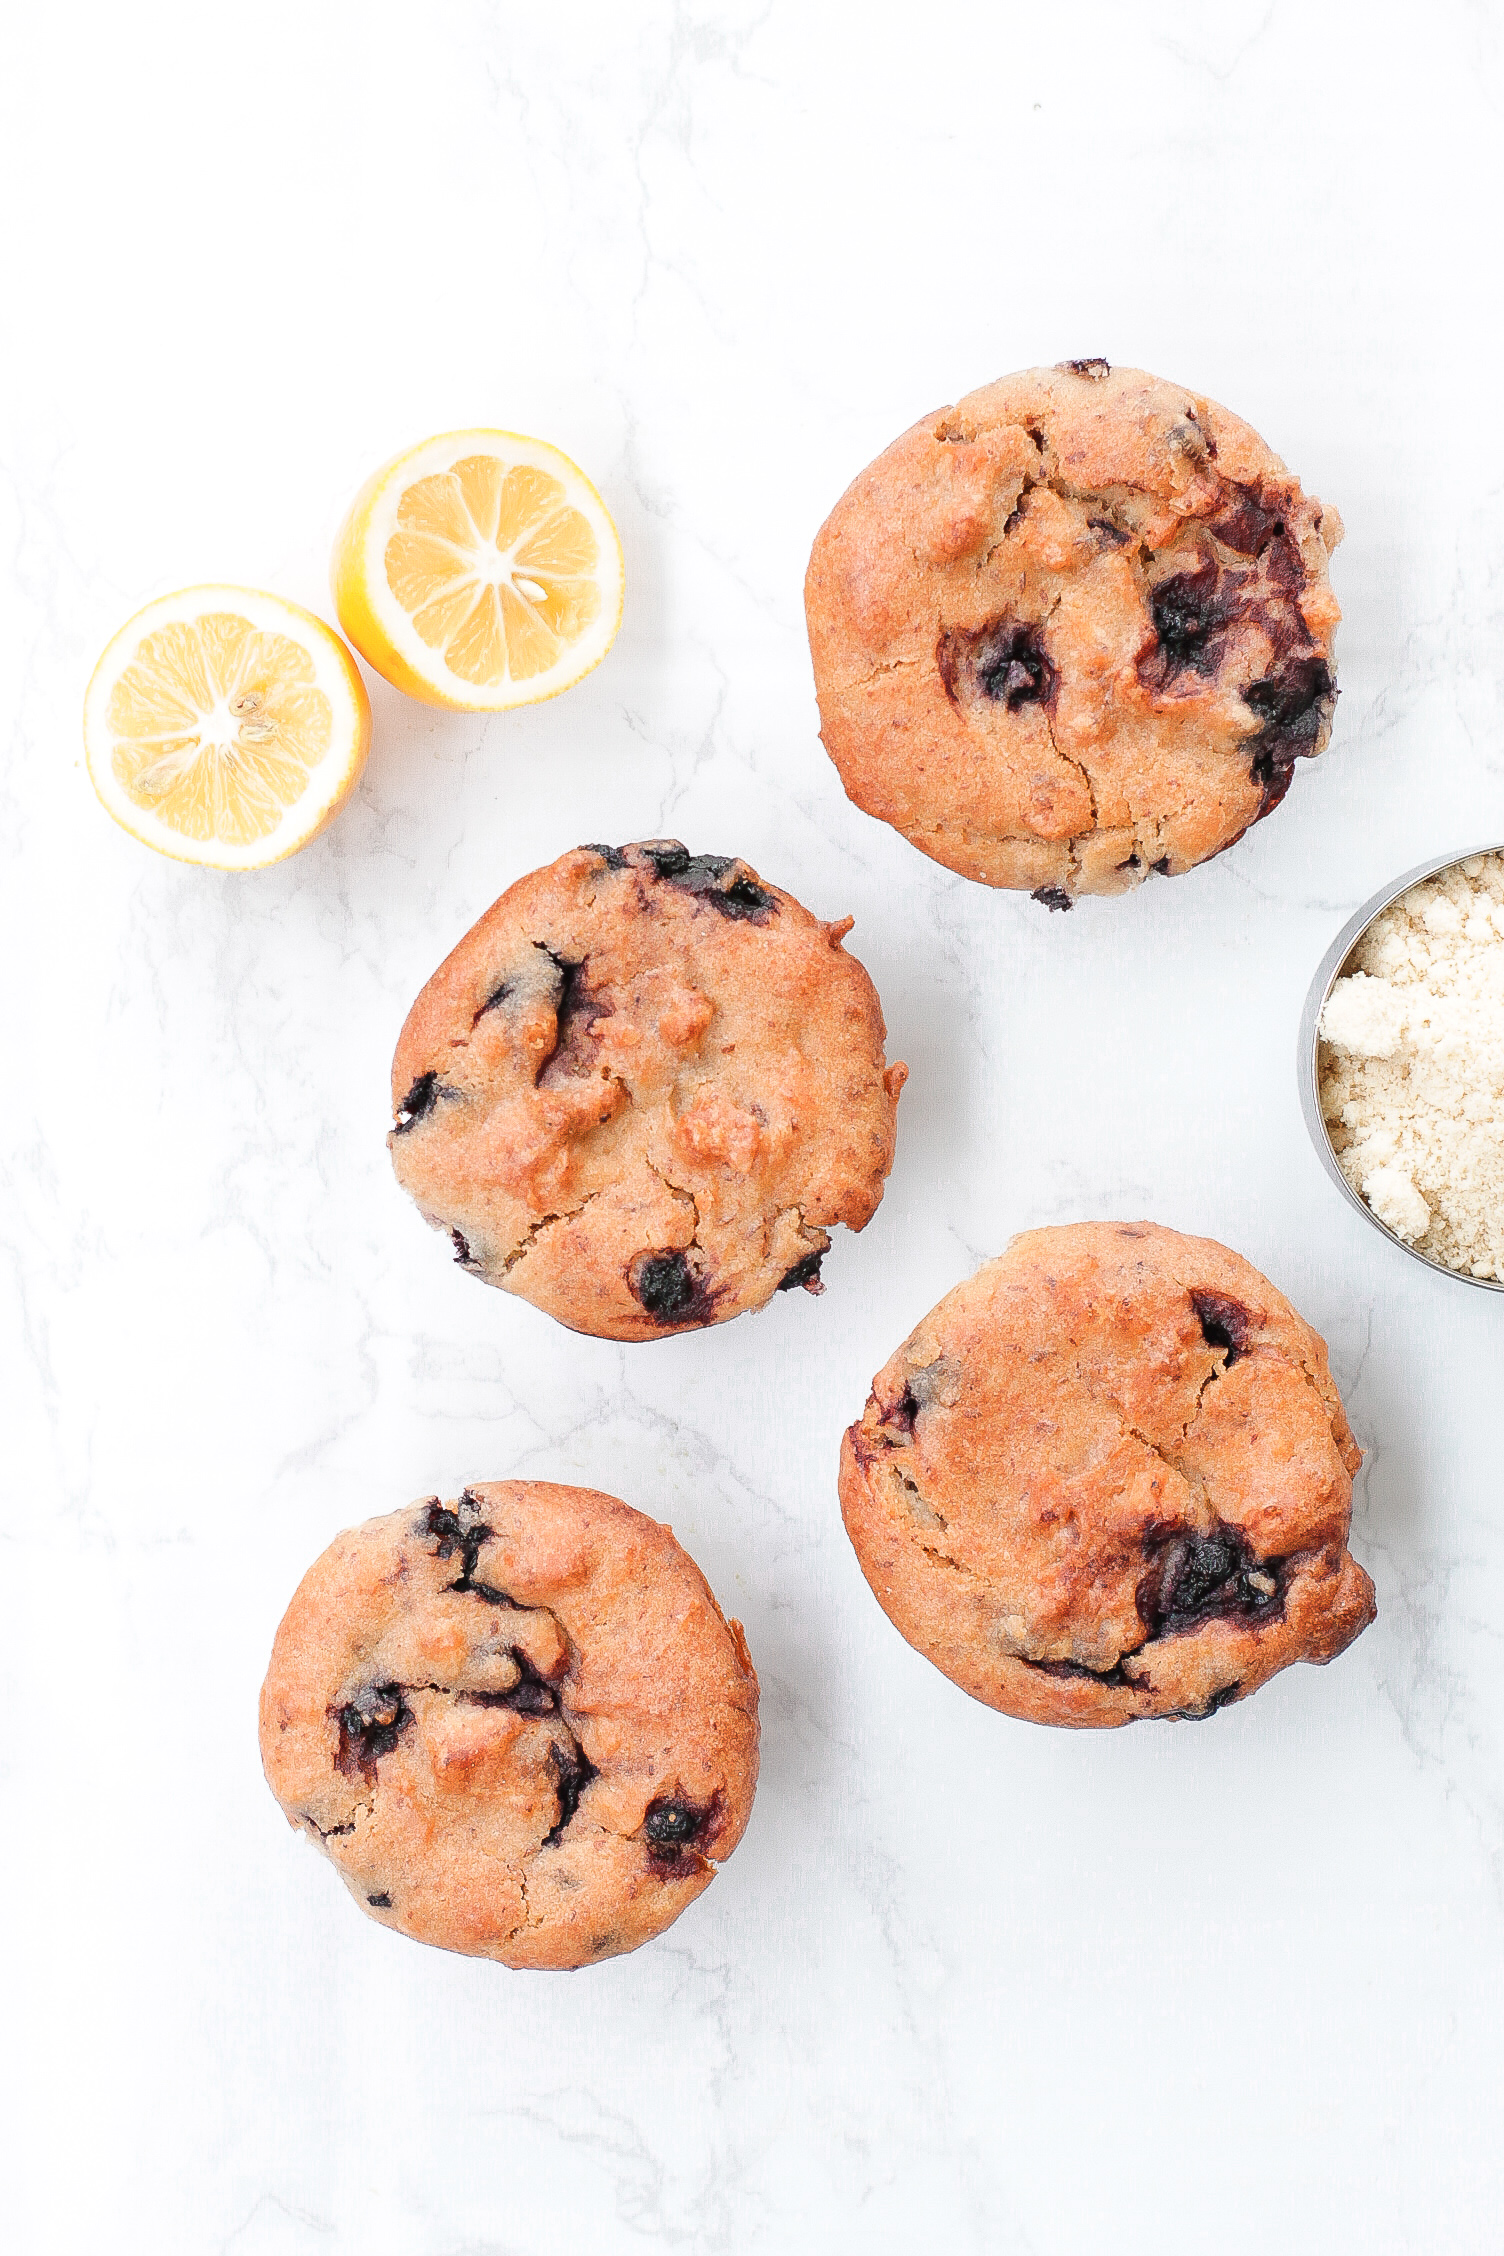 Vegan & Gluten-Free Lemon Blueberry Muffins